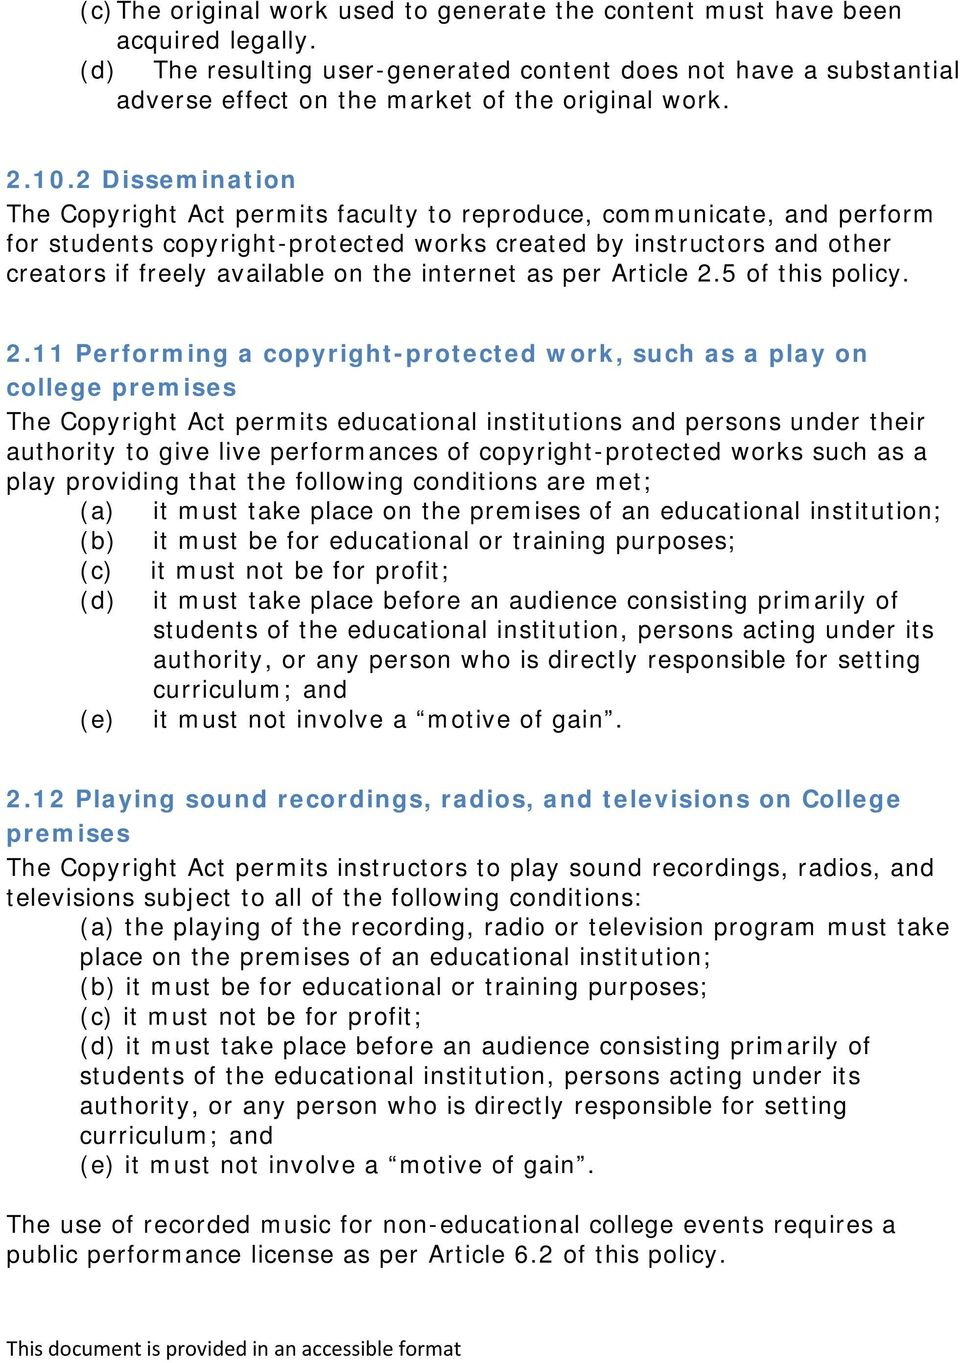 2 Dissemination The Copyright Act permits faculty to reproduce, communicate, and perform for students copyright-protected works created by instructors and other creators if freely available on the